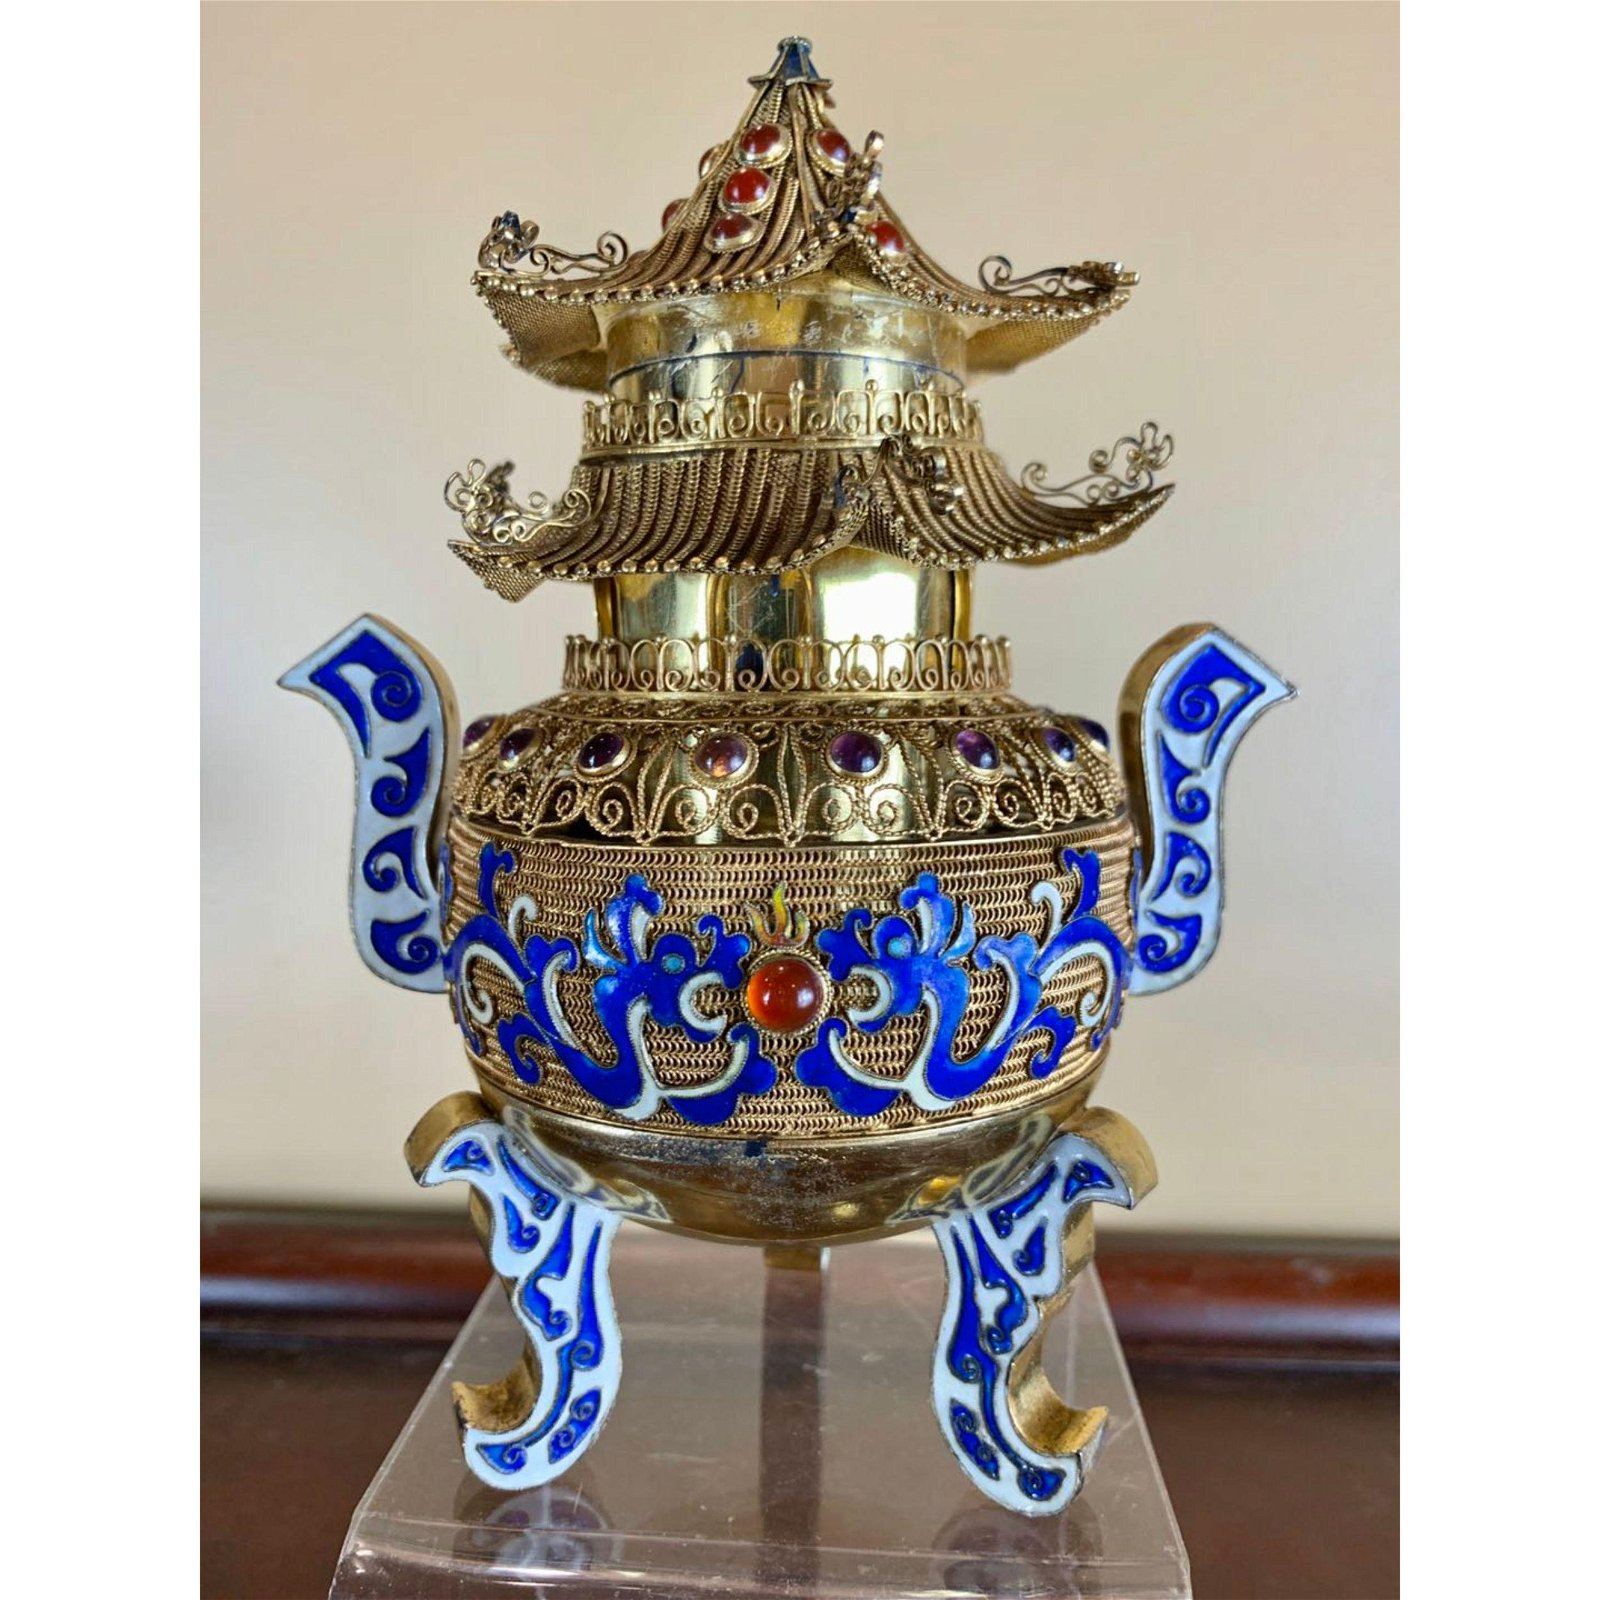 A fine Chinese Enamel on Sterling Silver Censer 1920-30